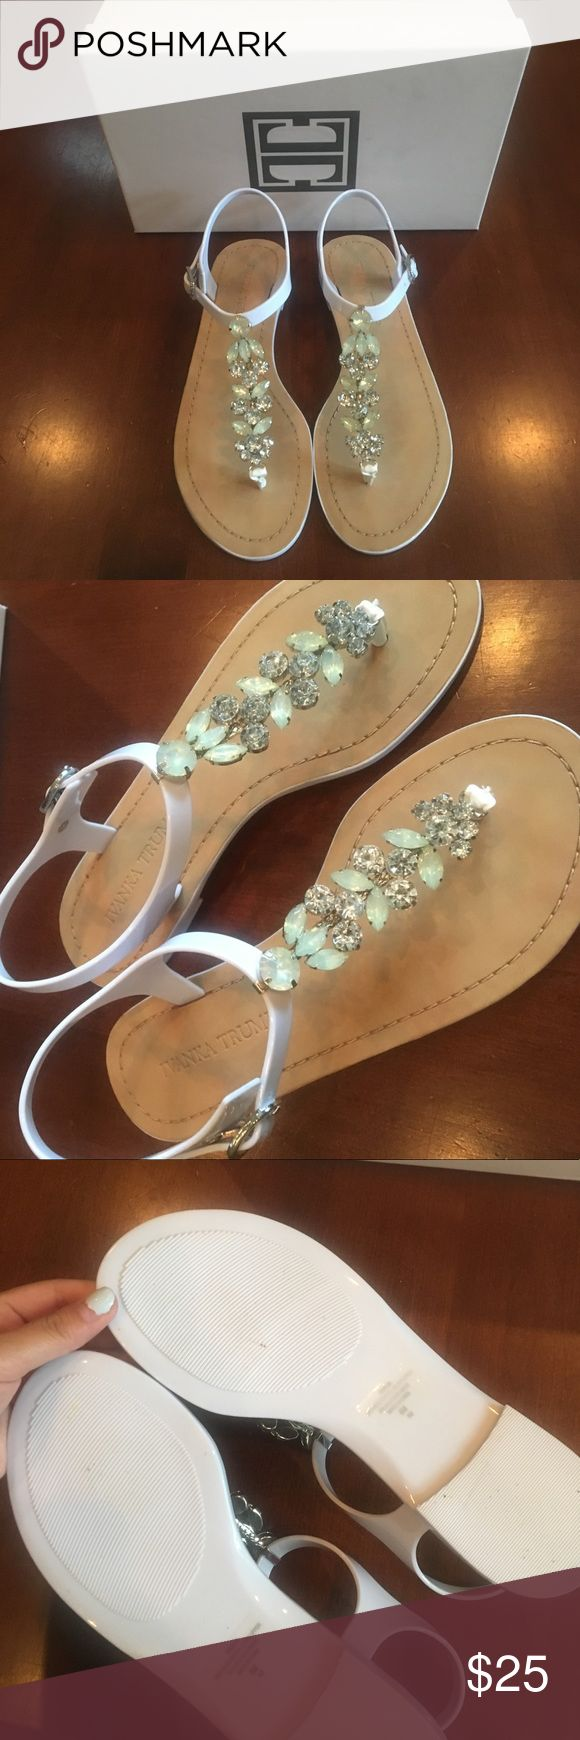 """NWOT Ivanka Trump Sandals NWOT Ivanka Trump """"Areya"""" jelly sandals in white. Woman's size 6. Beautiful embellished sandal, perfect for the summer! Comfortable, and can be worn up or down. Make me an offer!! :) Ivanka Trump Shoes Sandals"""